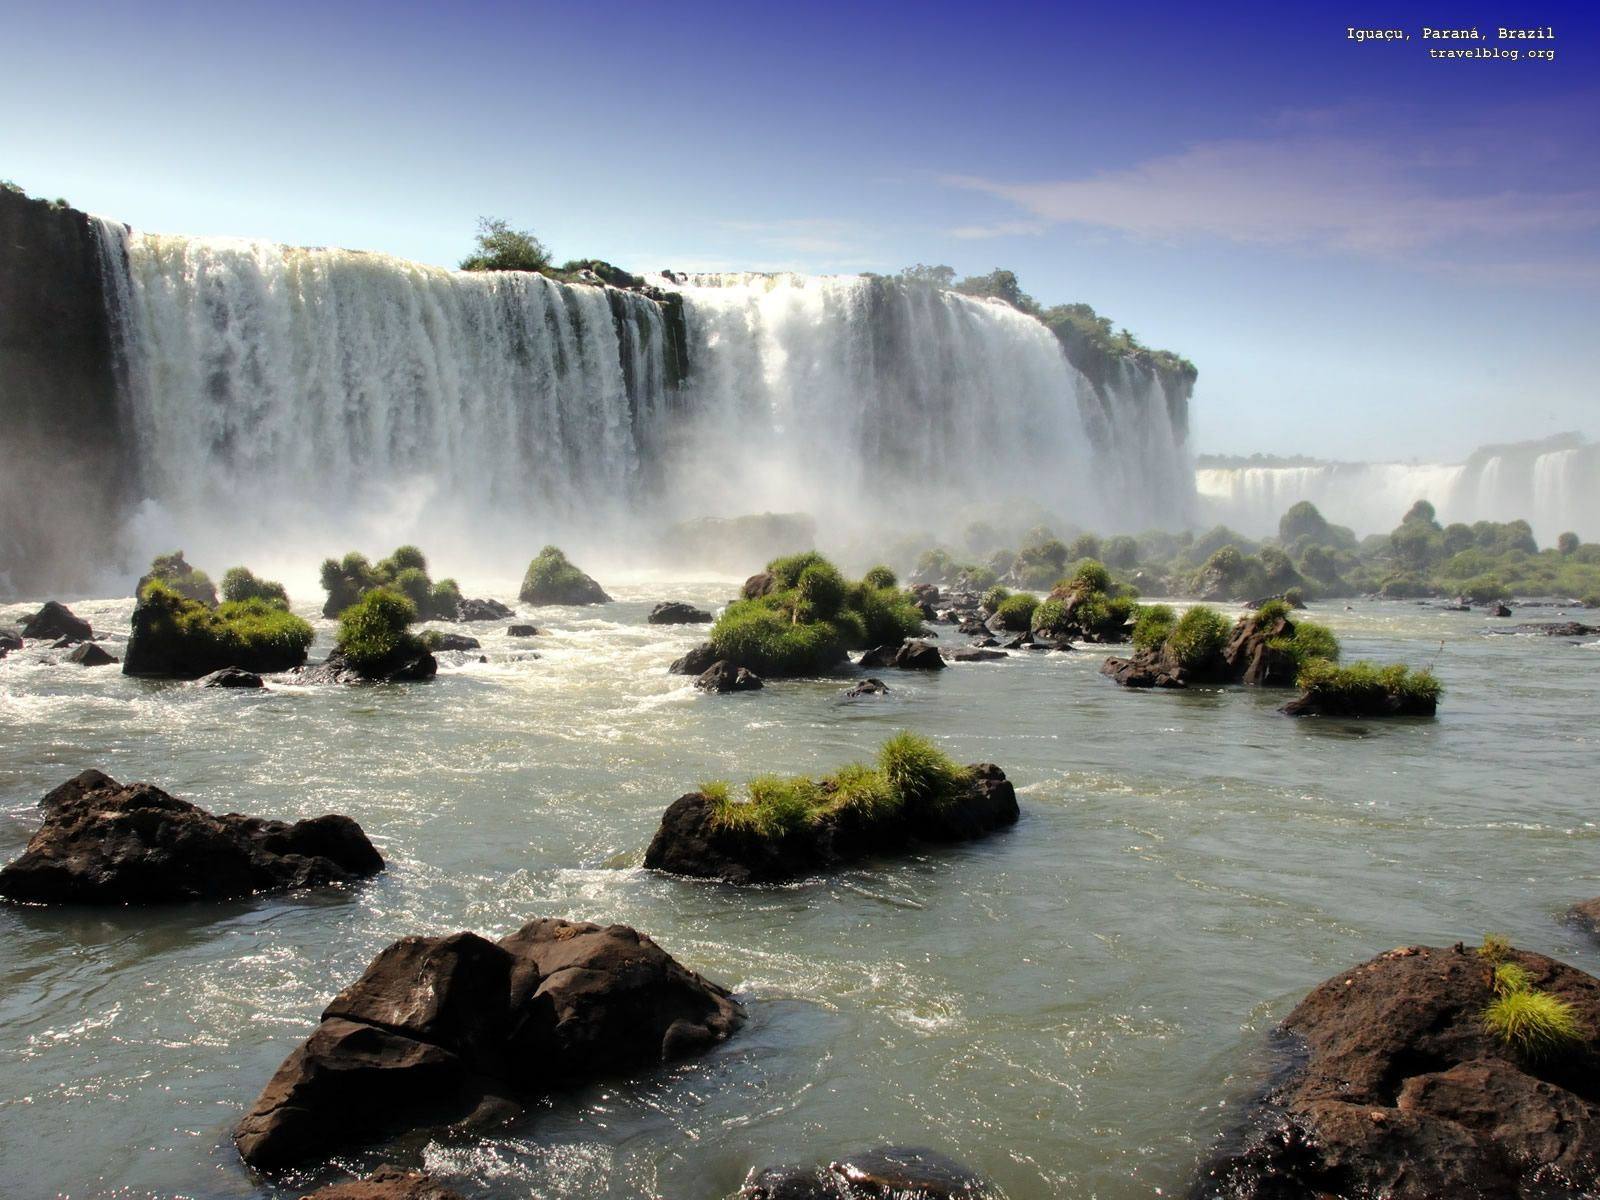 Good Wallpaper Desktop Background Waterfall - 8120d5c47929dc6acf817928492be85c  Pictures_894020 .jpg